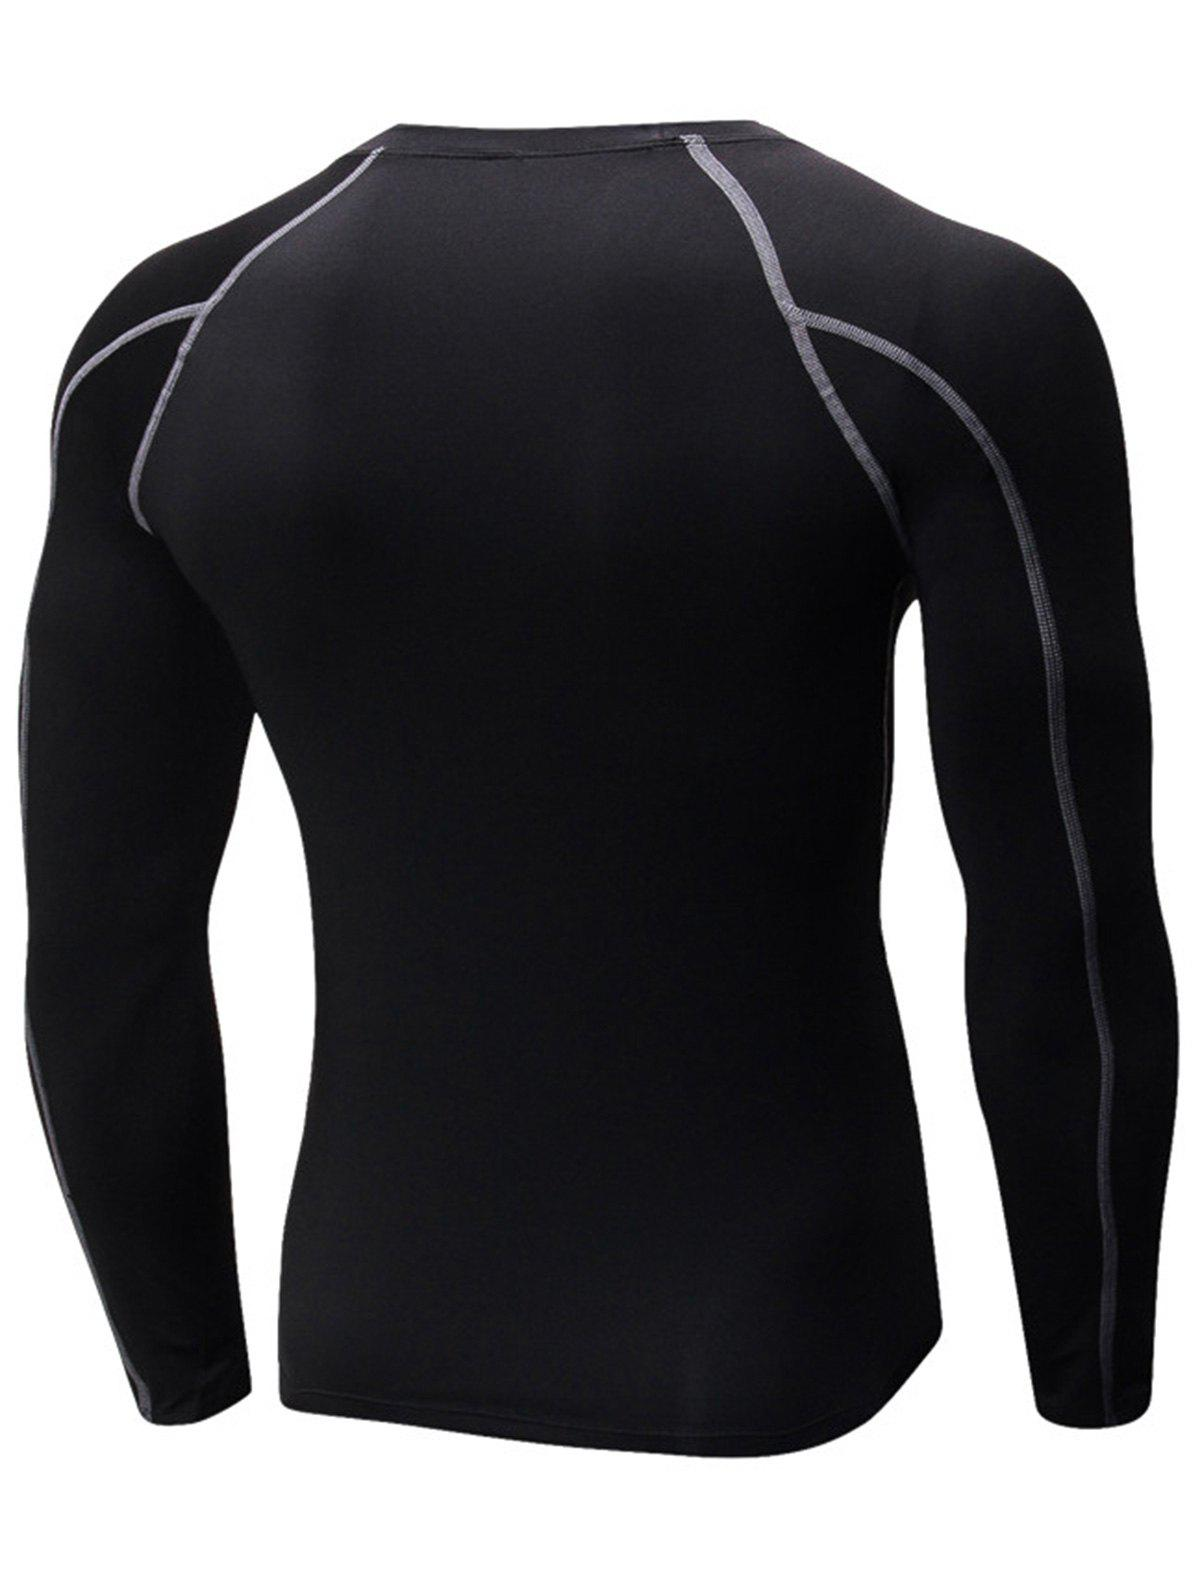 Stretchy Quick Dry Suture Long Sleeve T-shirt - BLACK/GREY 2XL